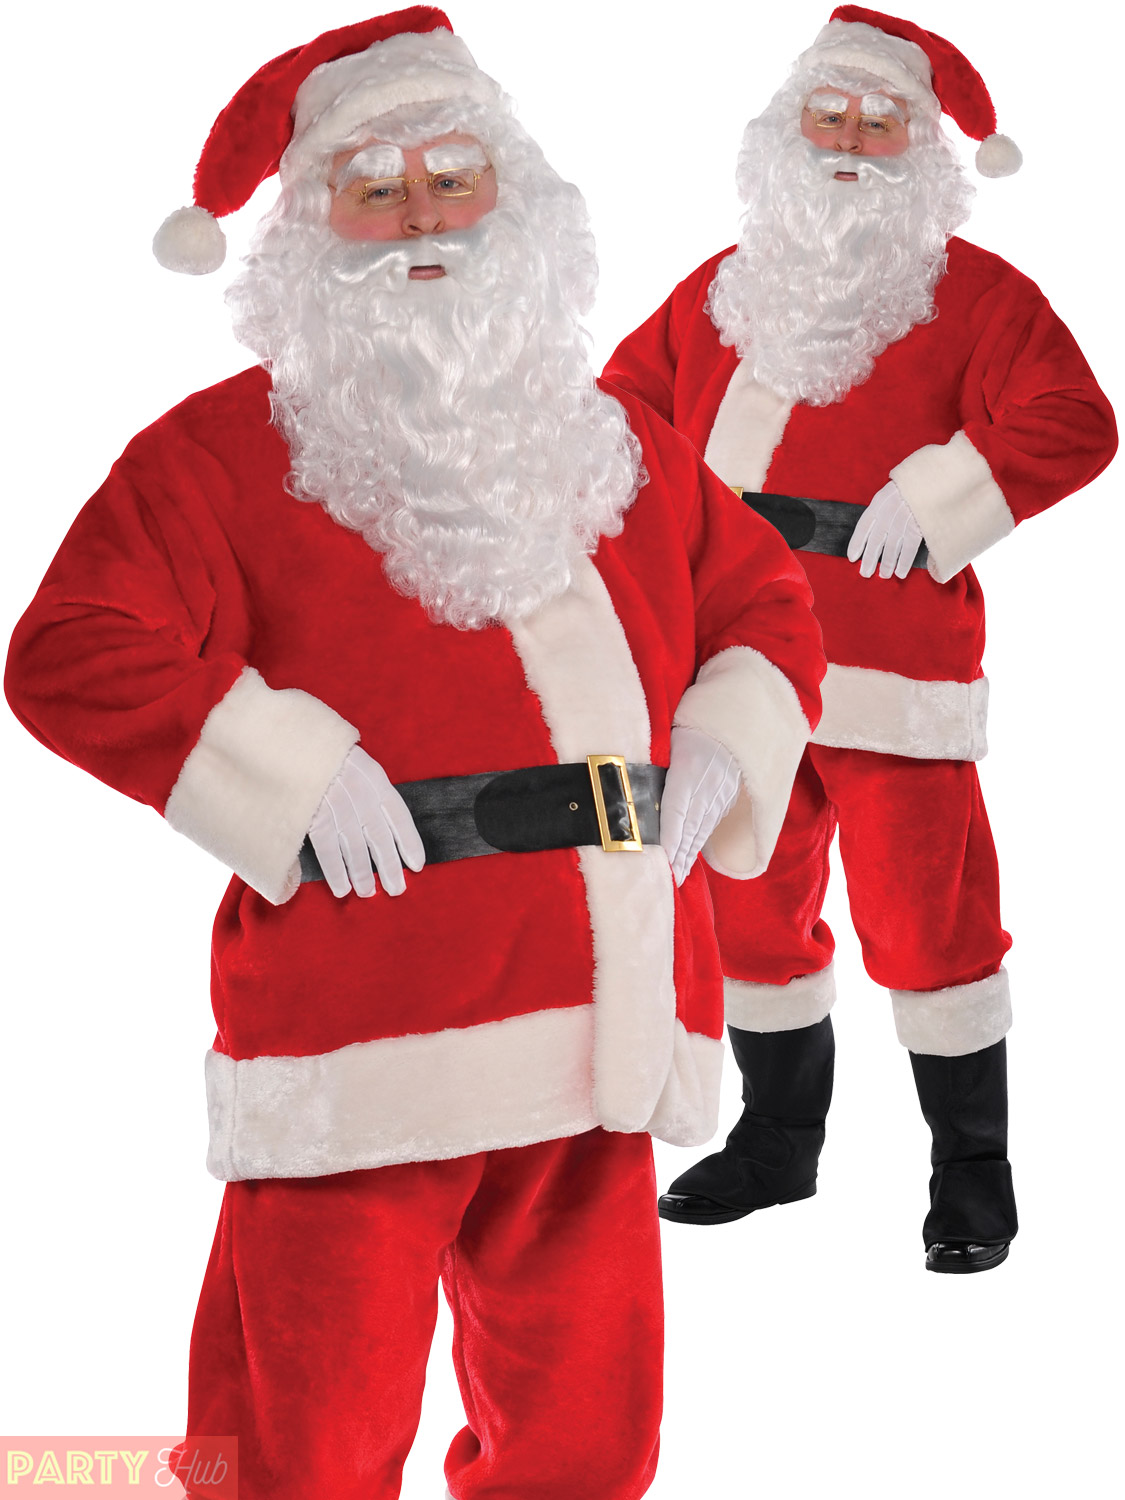 Santa Suit Father Christmas Fancy Dress Costume Deluxe Mens Xmas Outfit 4 Adult